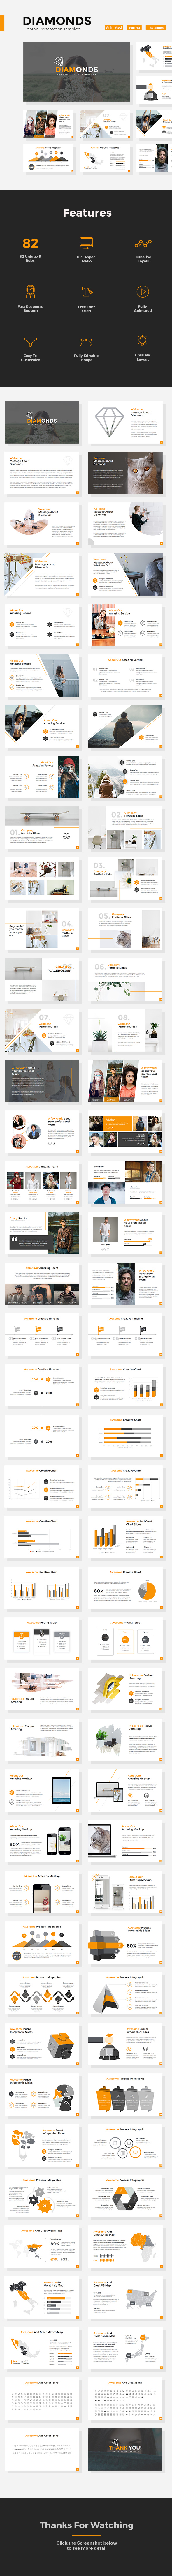 Diamonds - Creative Powerpoint Template - Creative PowerPoint Templates